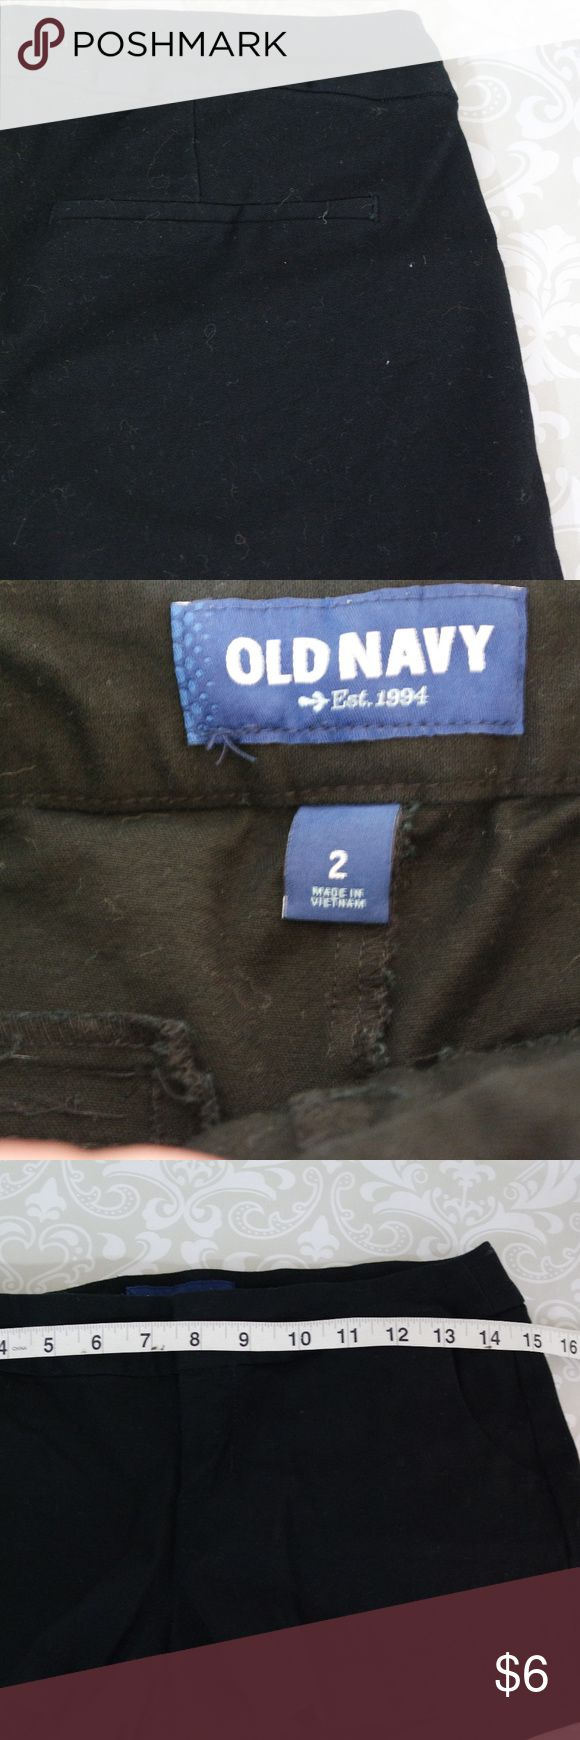 Old Navy Black Short Shorts Size 2 Excellent condition size black Old Nacy shorts.  Size 2.  Bundle your likes for my best offer.  The more items in your bundle the bigger discount I can offer!  Thank you for shopping with me!  (H) Old Navy Shorts